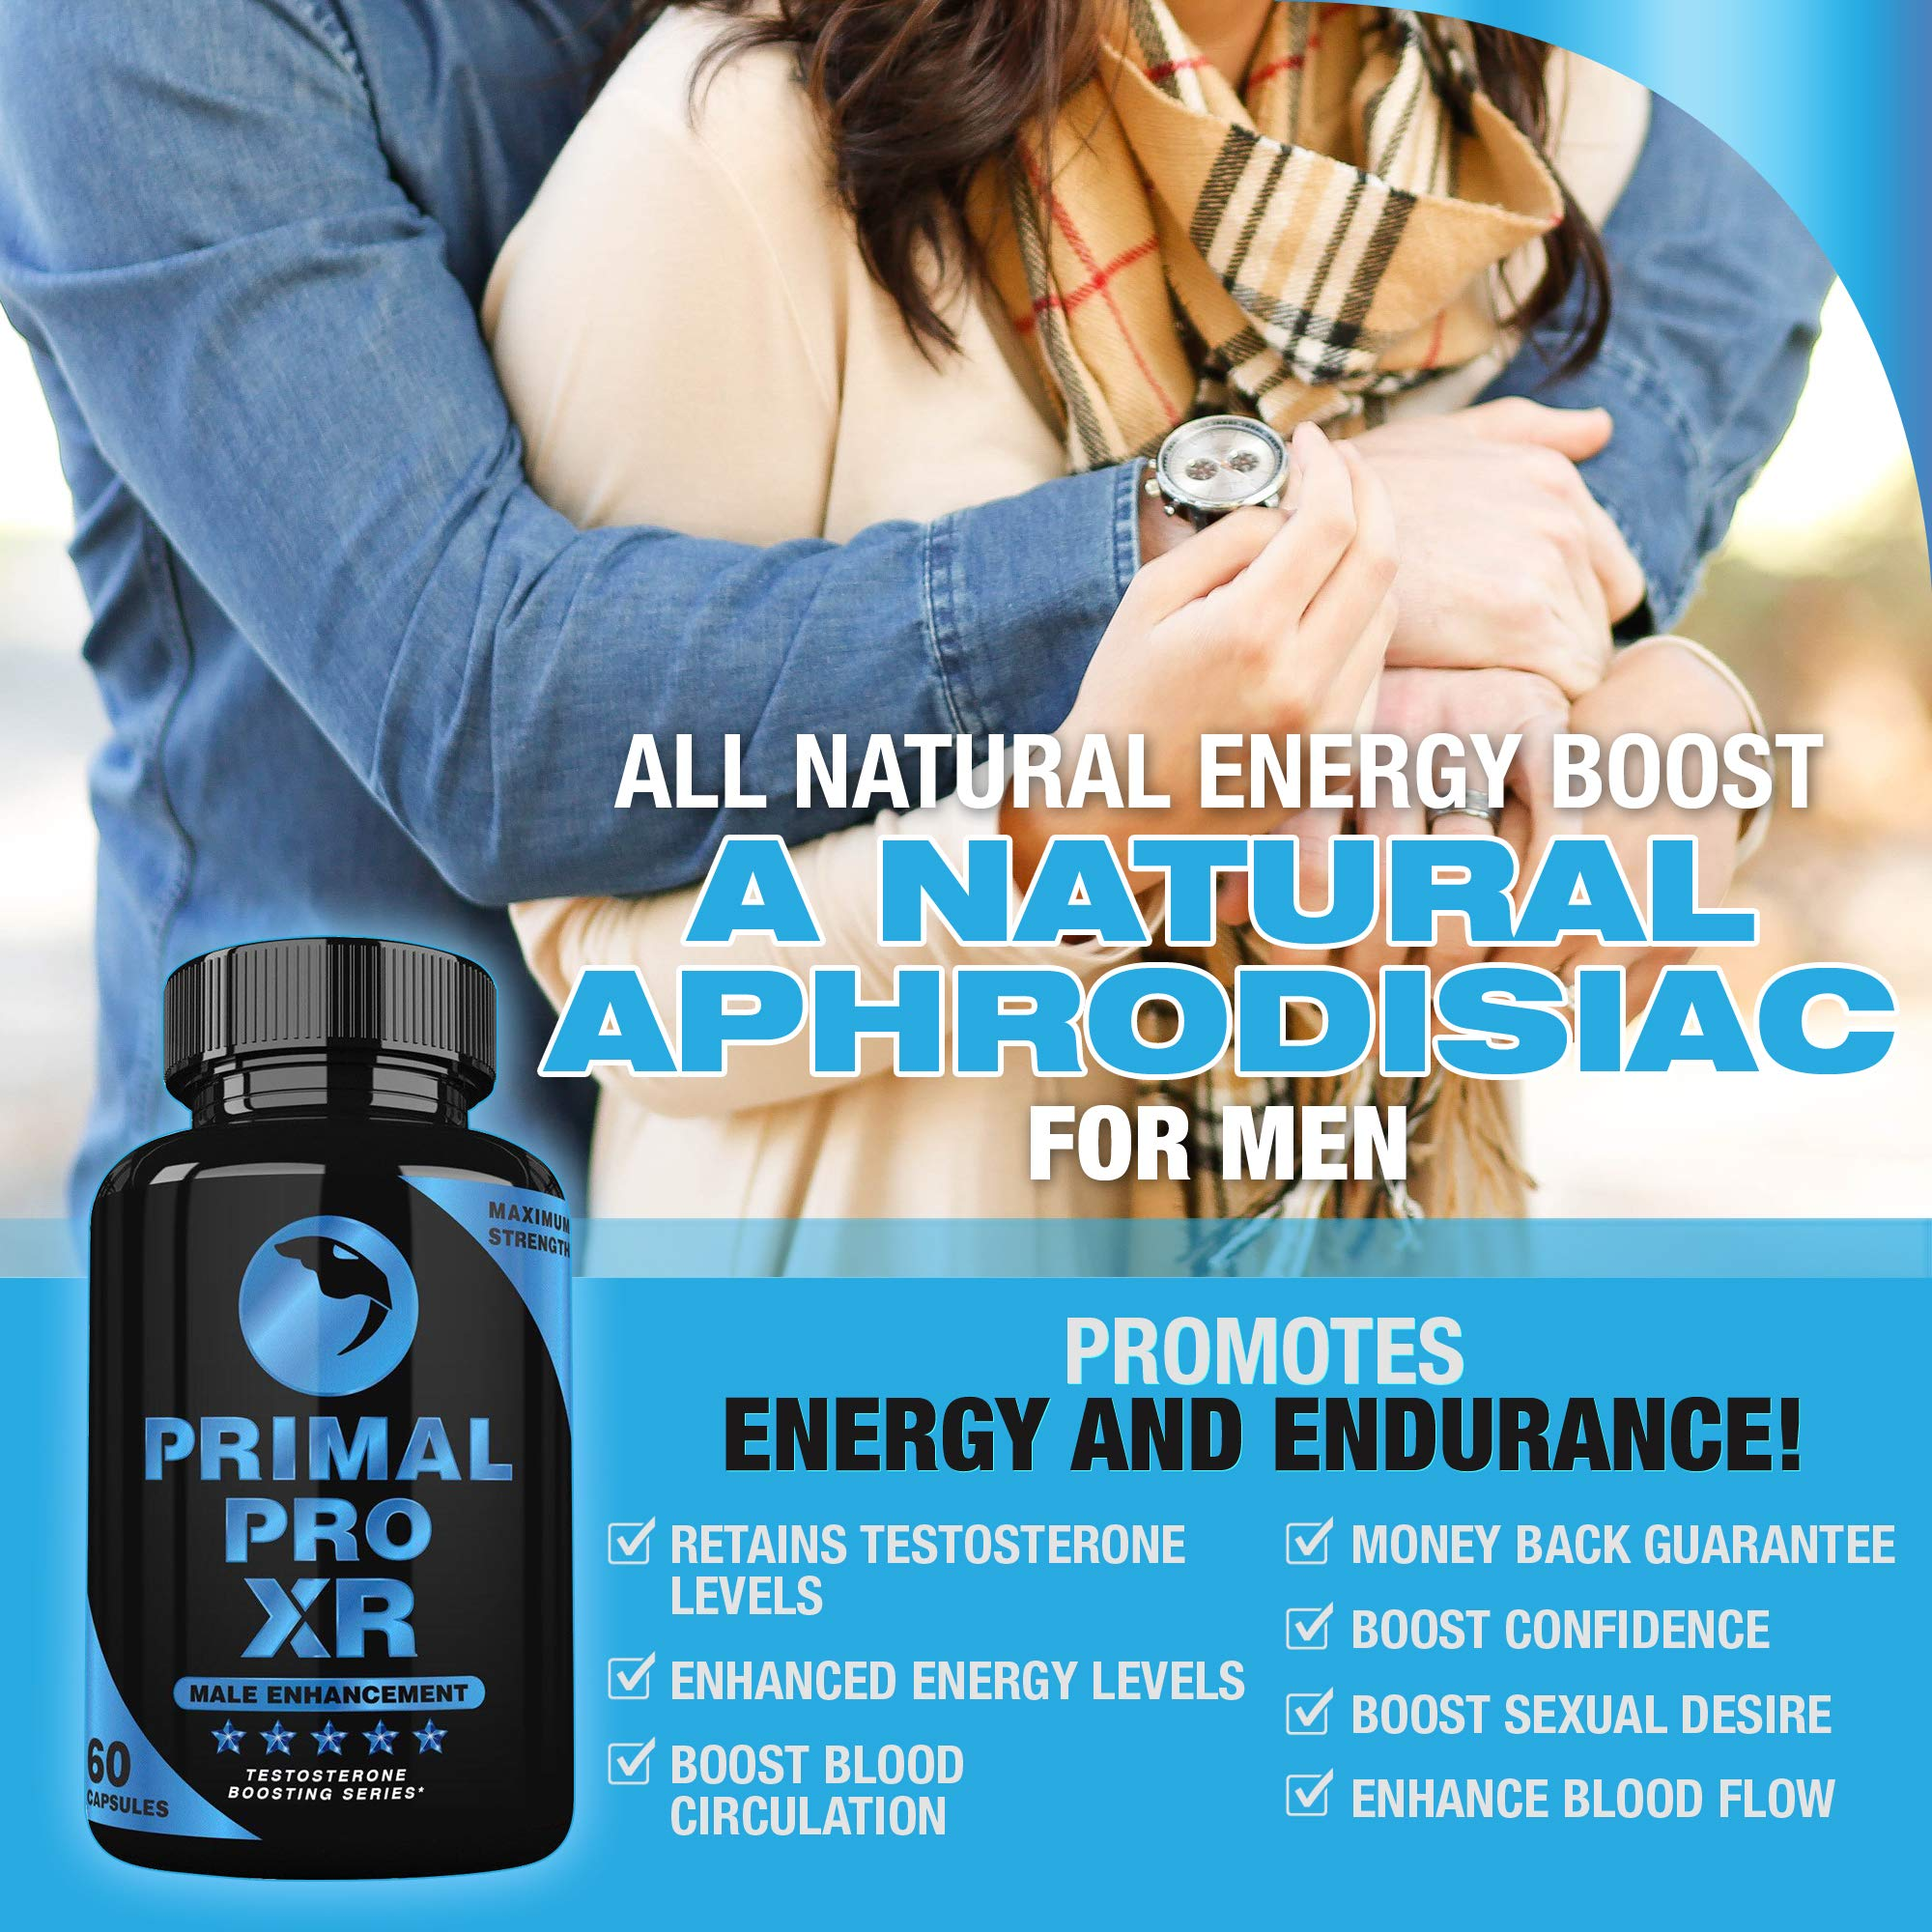 Primal Pro XR - Male Enhancement - Extra Strength Testosterone Booster - Naturally Boost Your Libido, Stamina, Endurance, Strength & Energy for Men & Women - Burn Fat & Build Lean Muscle Mass Today by Primal Pro XR (Image #3)